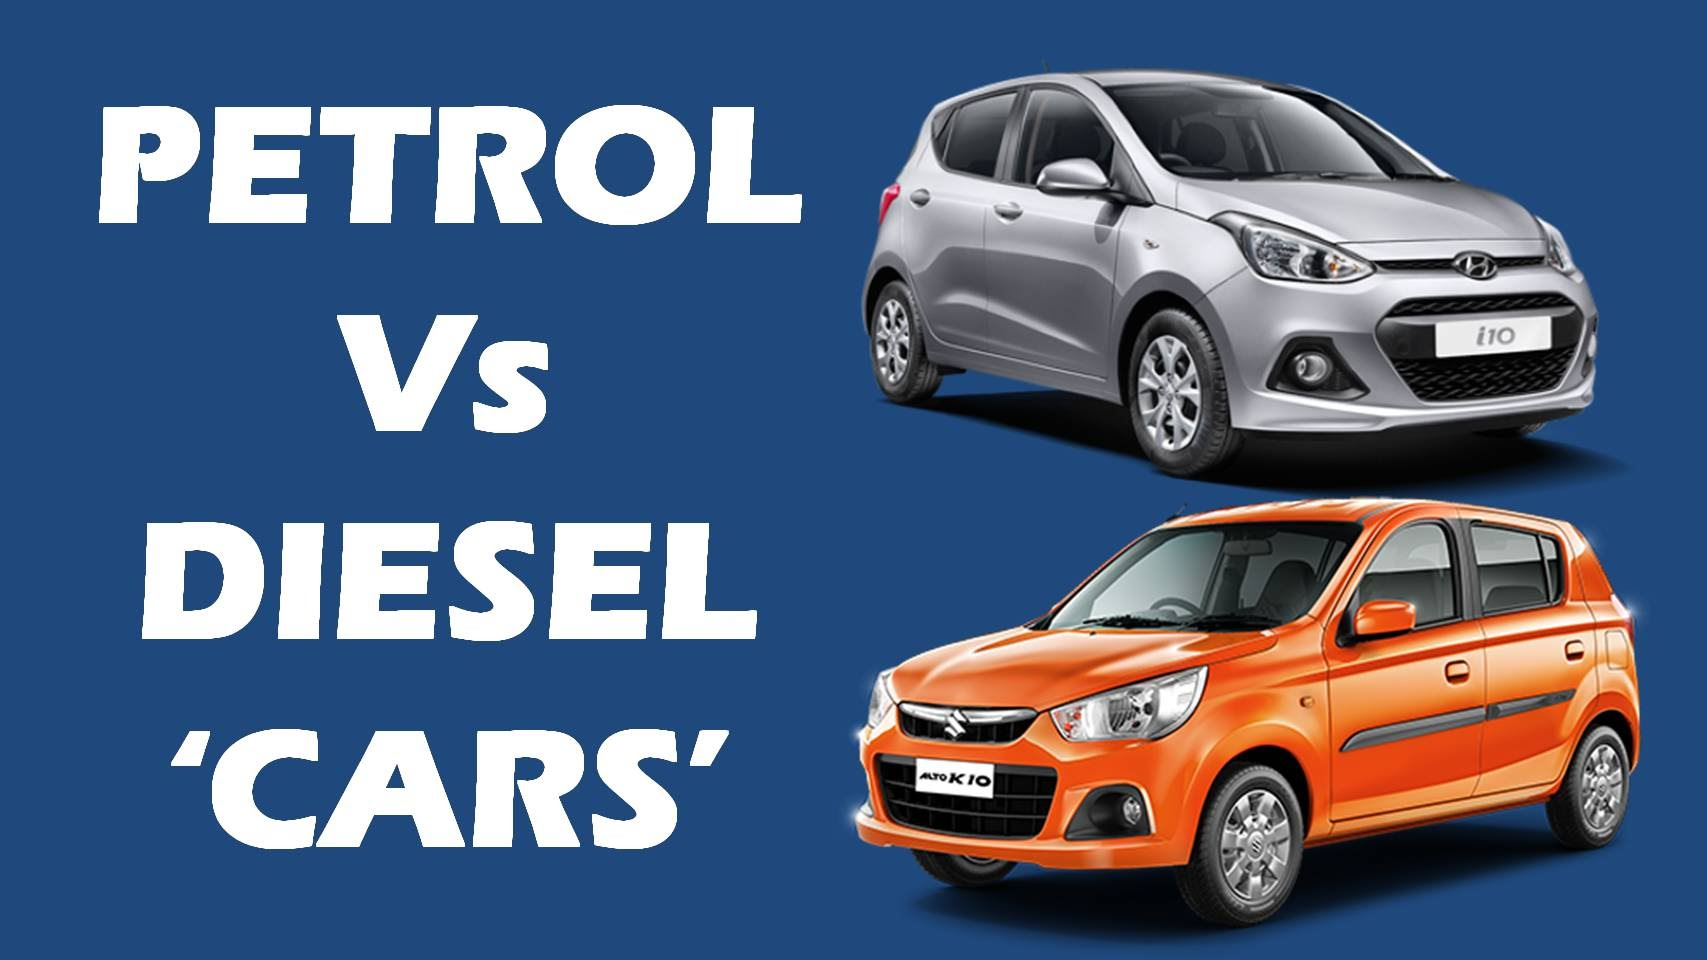 Why do they use diesel in large vehicles rather than petrol?